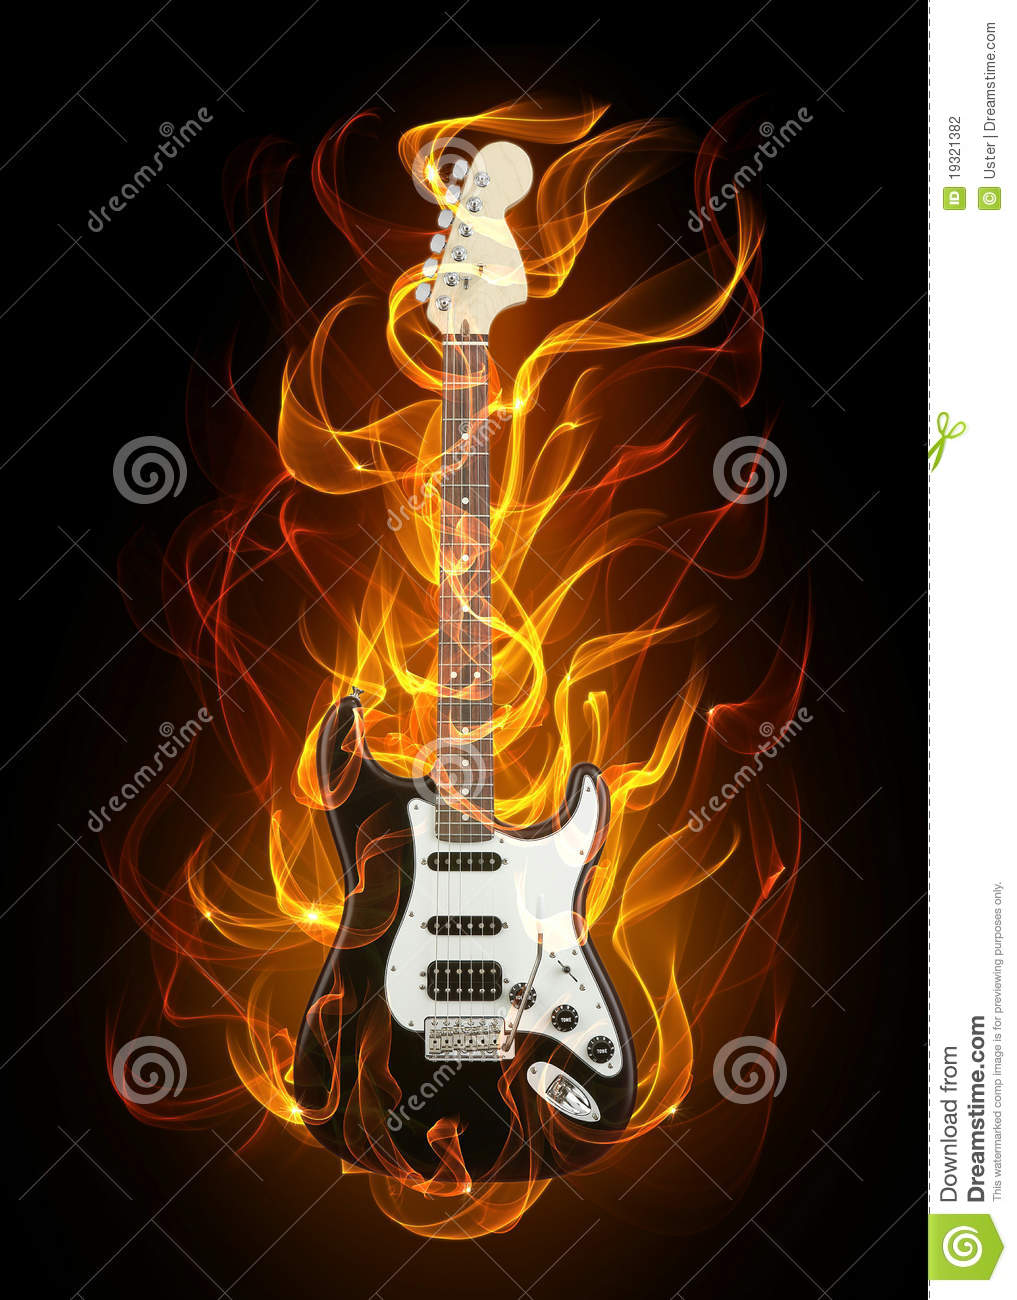 Guitar In Fire Stock Photo Image Of Electric Fiery